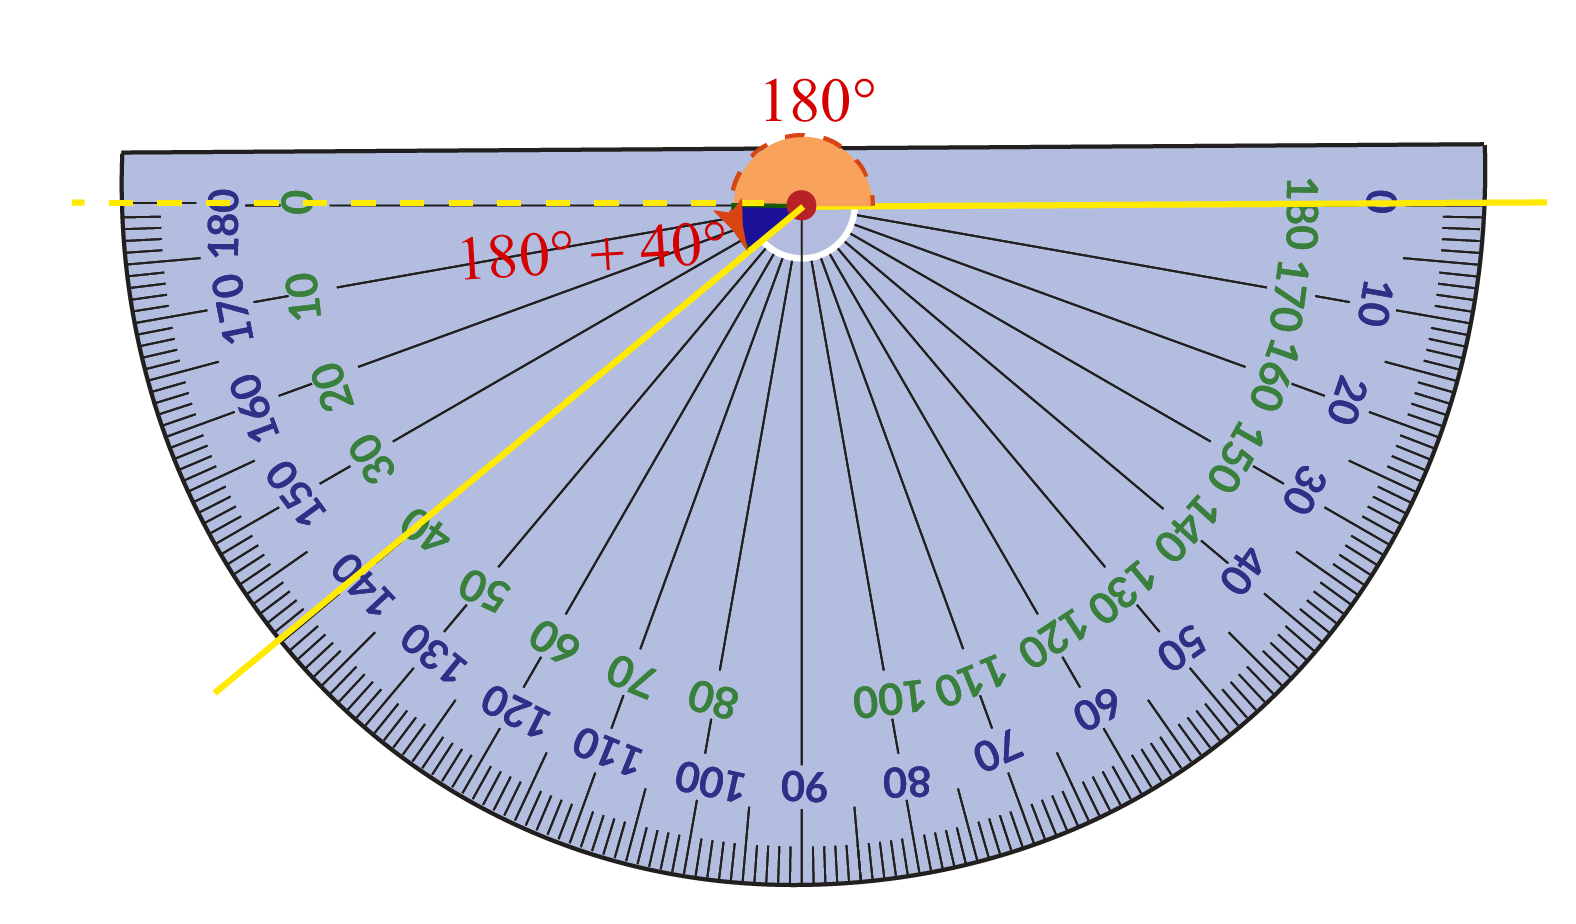 220 degree angle measured using a protractor